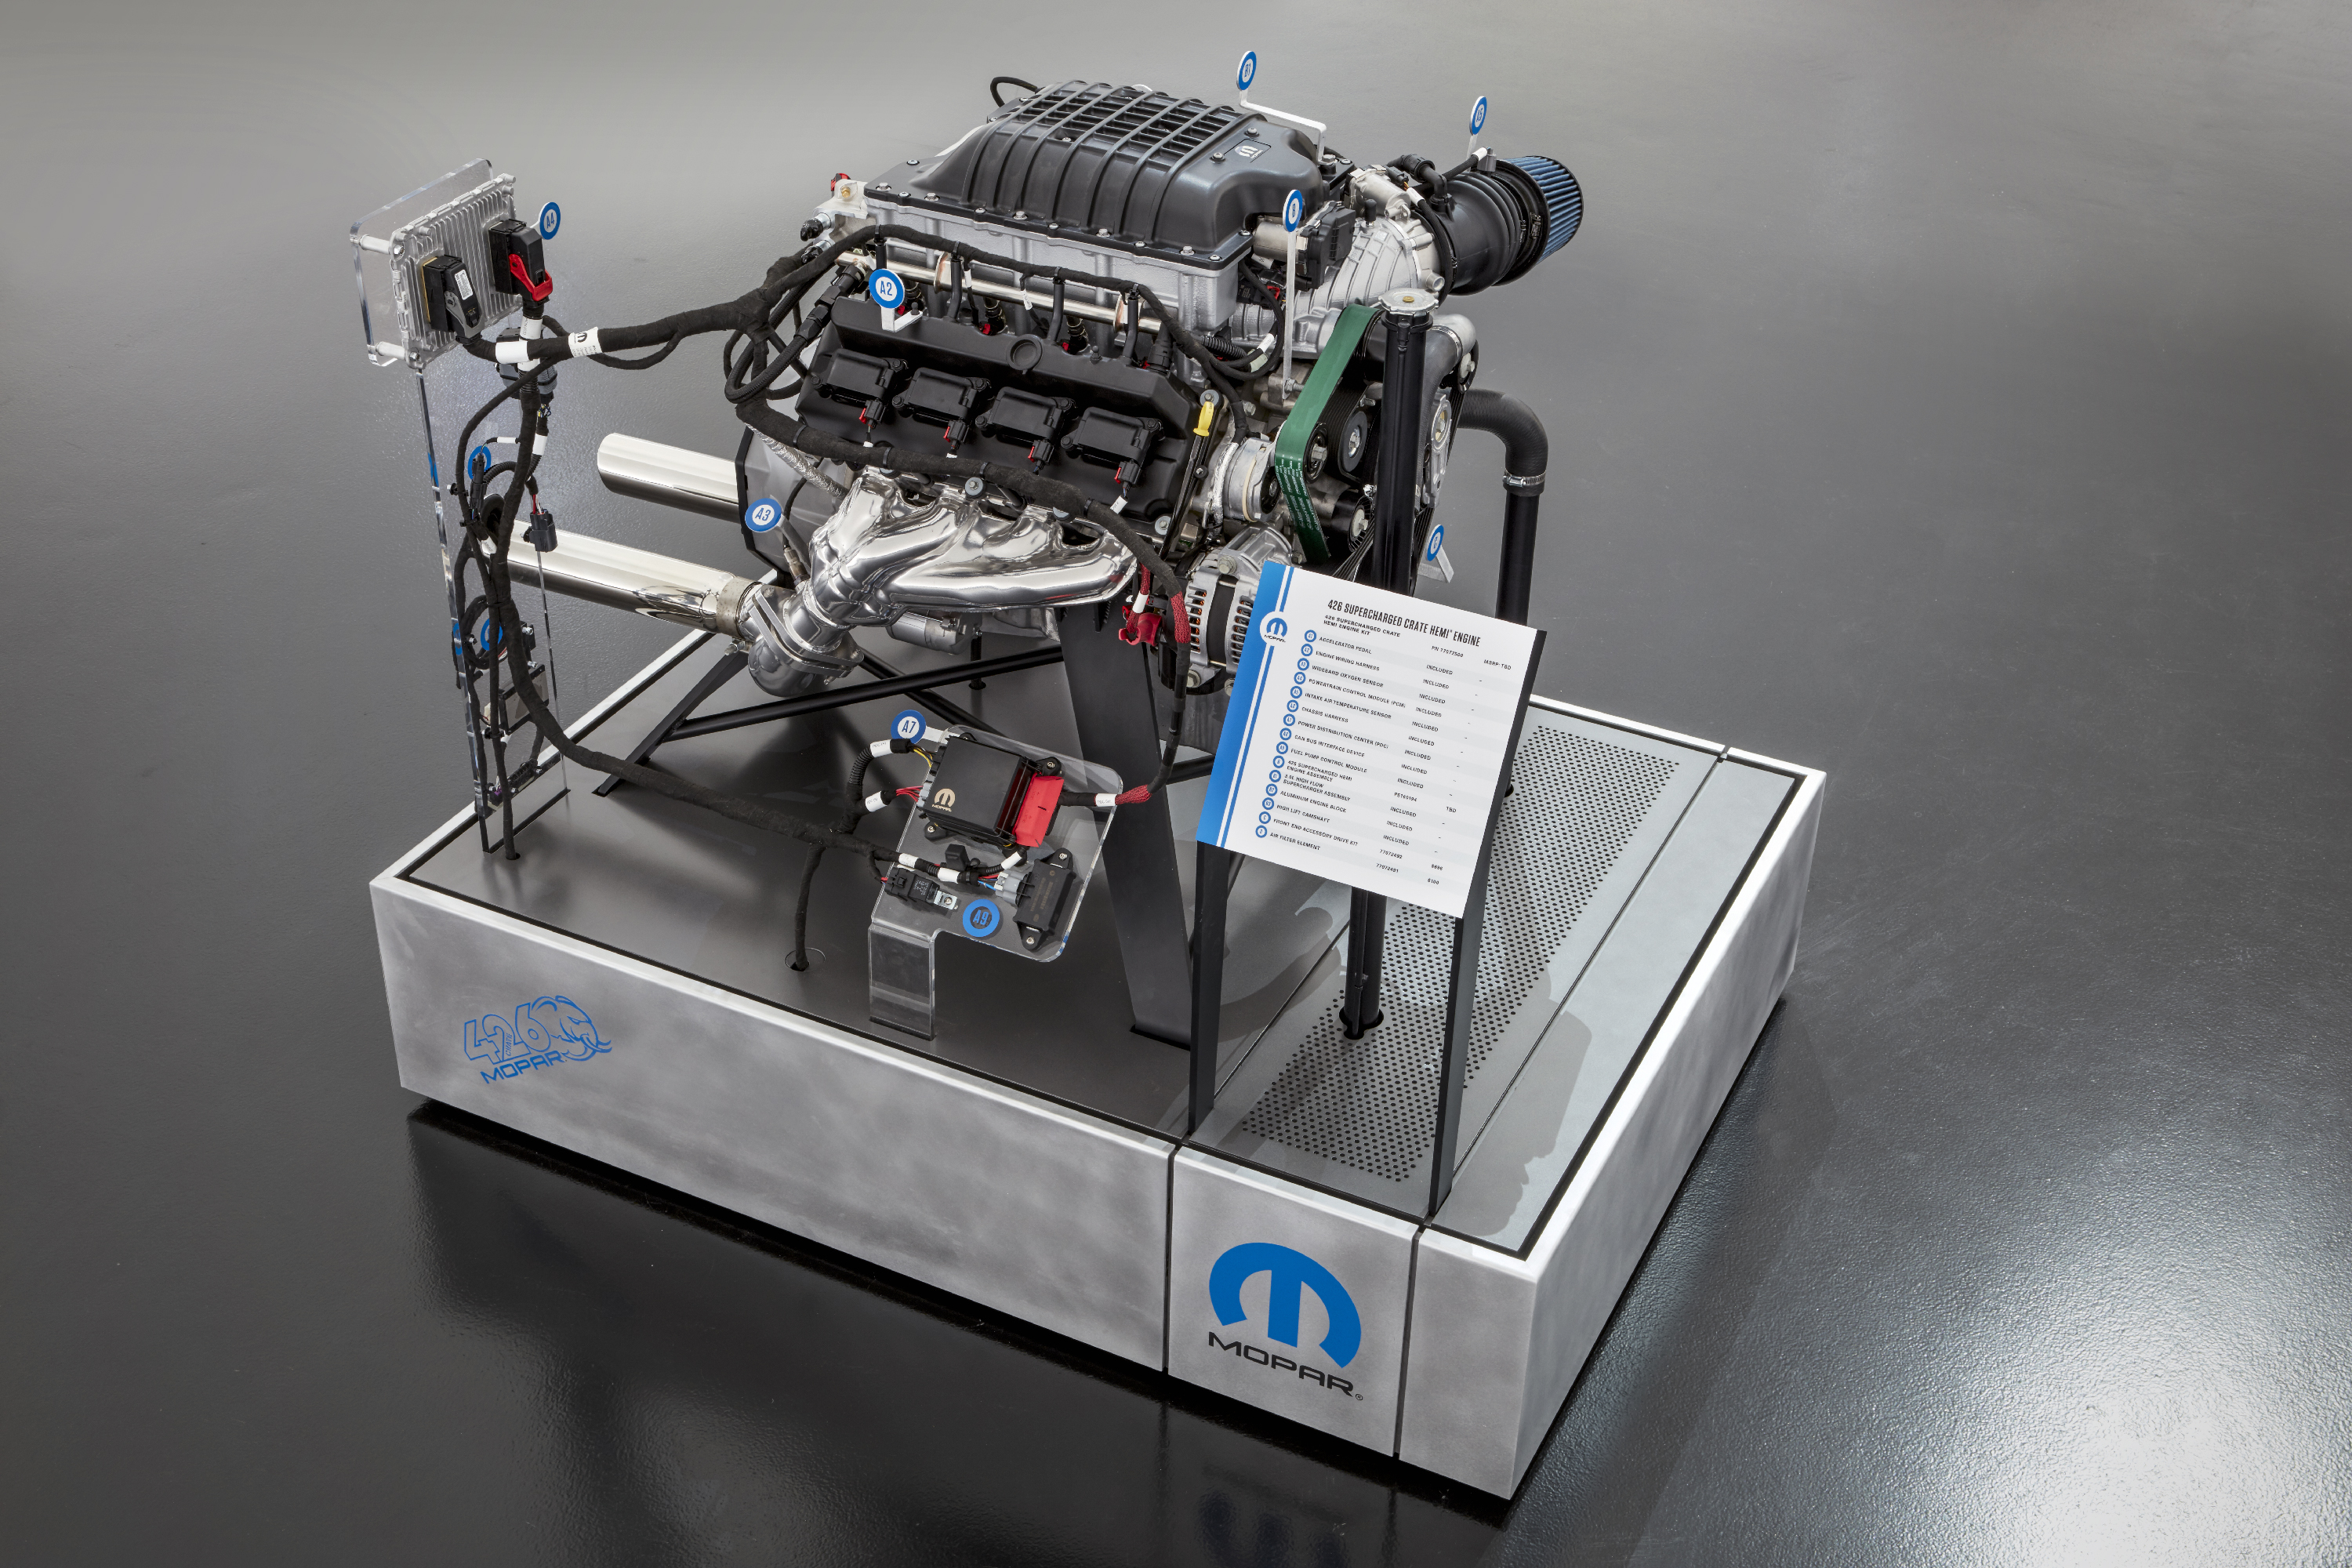 "The Mopar brand is stampeding into the 2018 Specialty Equipment Market Association (SEMA) Show with a brand-new HEMI®-engine-powered beast: the ""Hellephant"" 426 Supercharged Mopar Crate HEMI Engine, which turns the crank at a mammoth 1,000 horsepower and 950 lb.-ft. of torque."